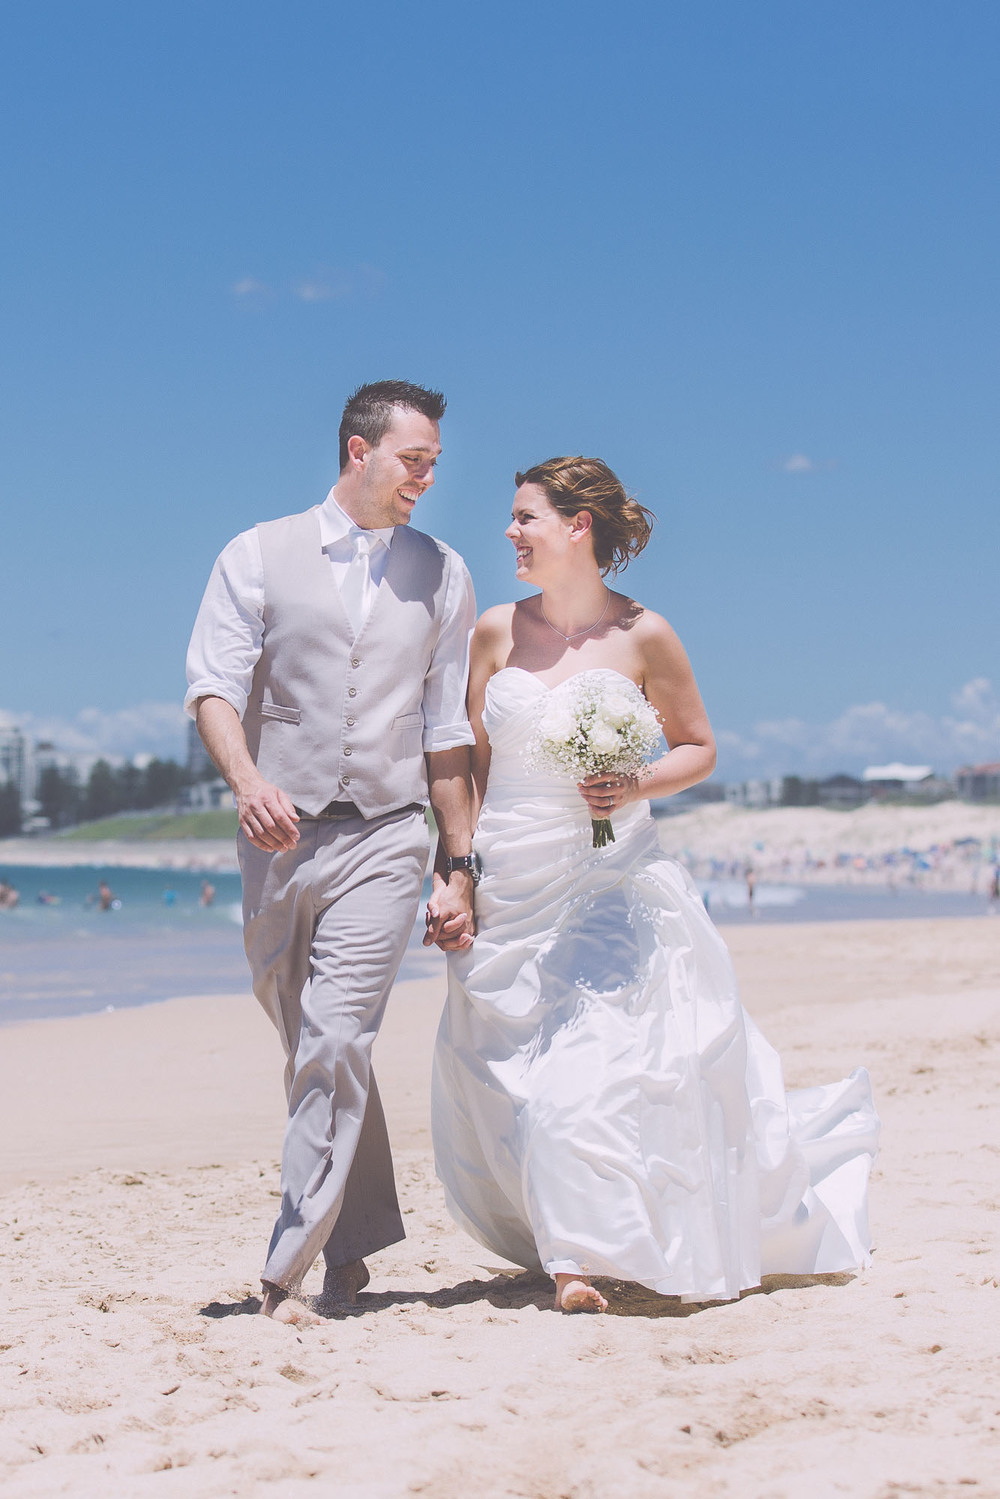 sydney wedding photography beach wedding-115.jpg